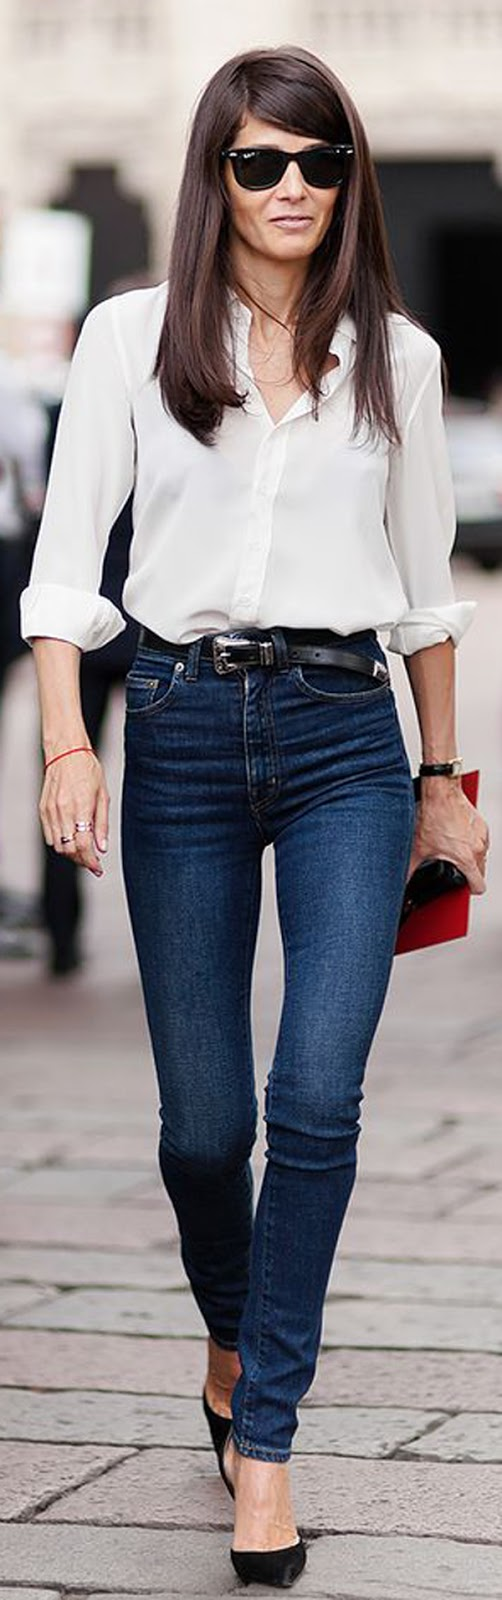 skinny jeans + white blouse